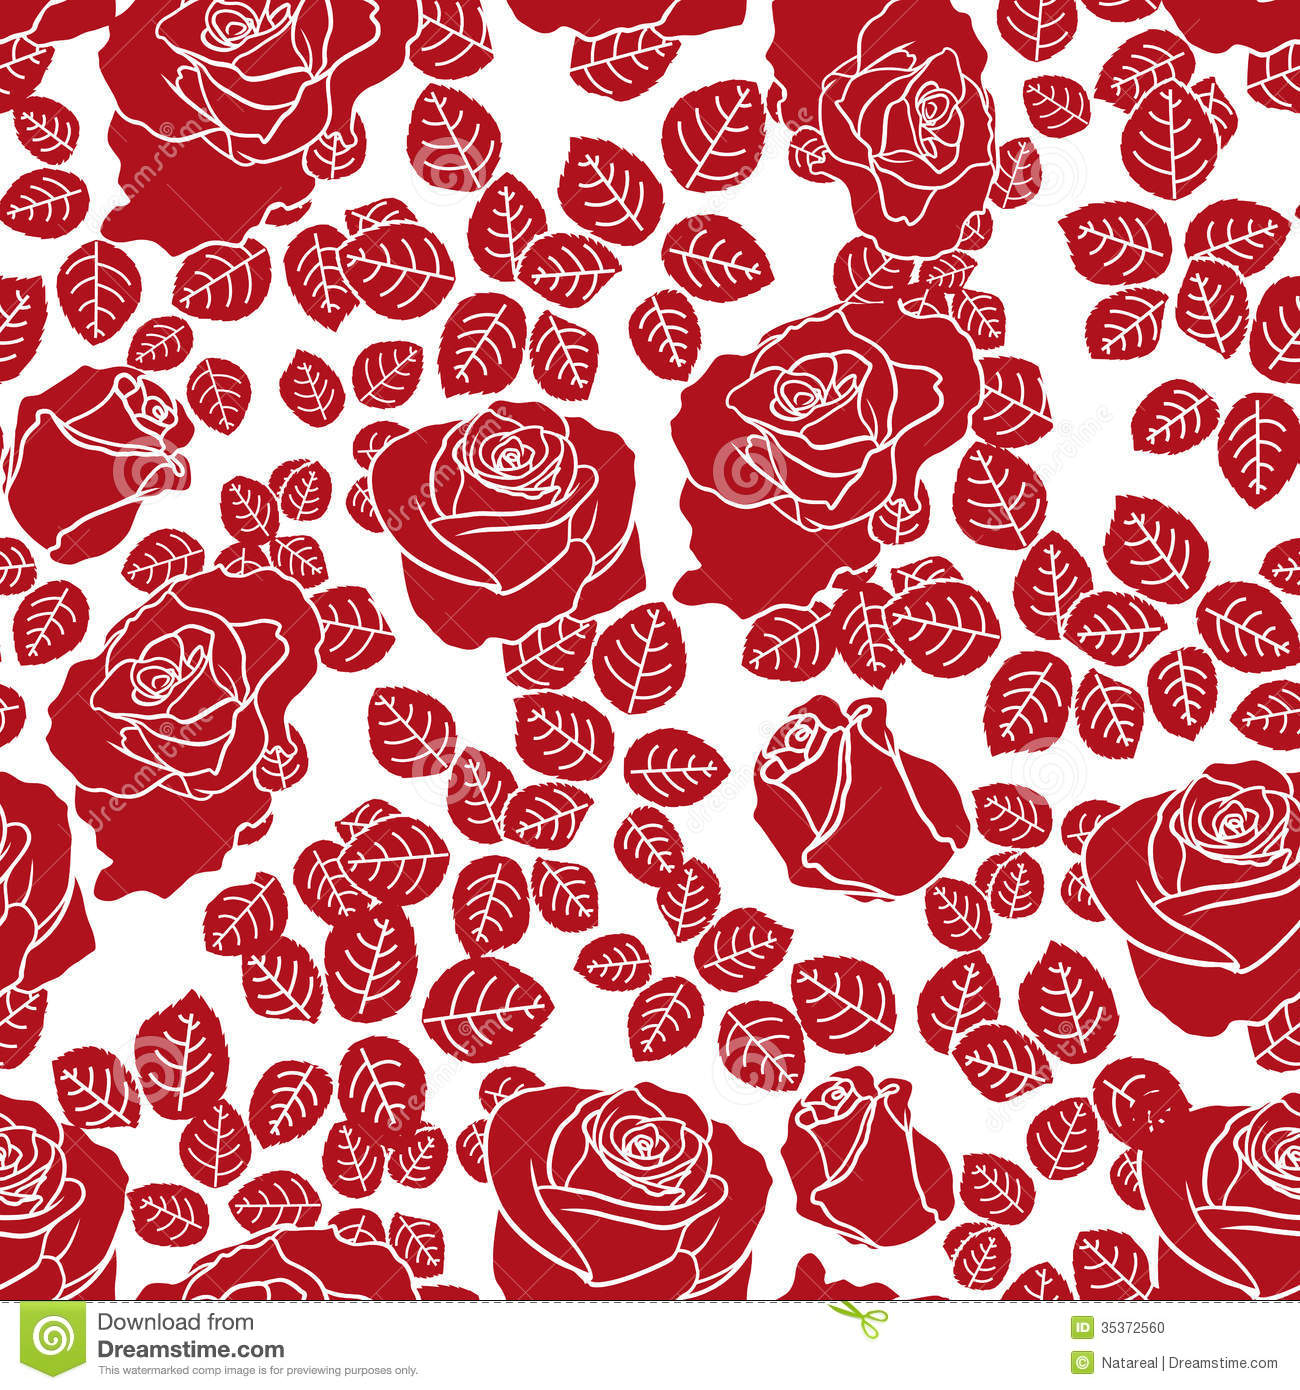 red rose hand wallpaper